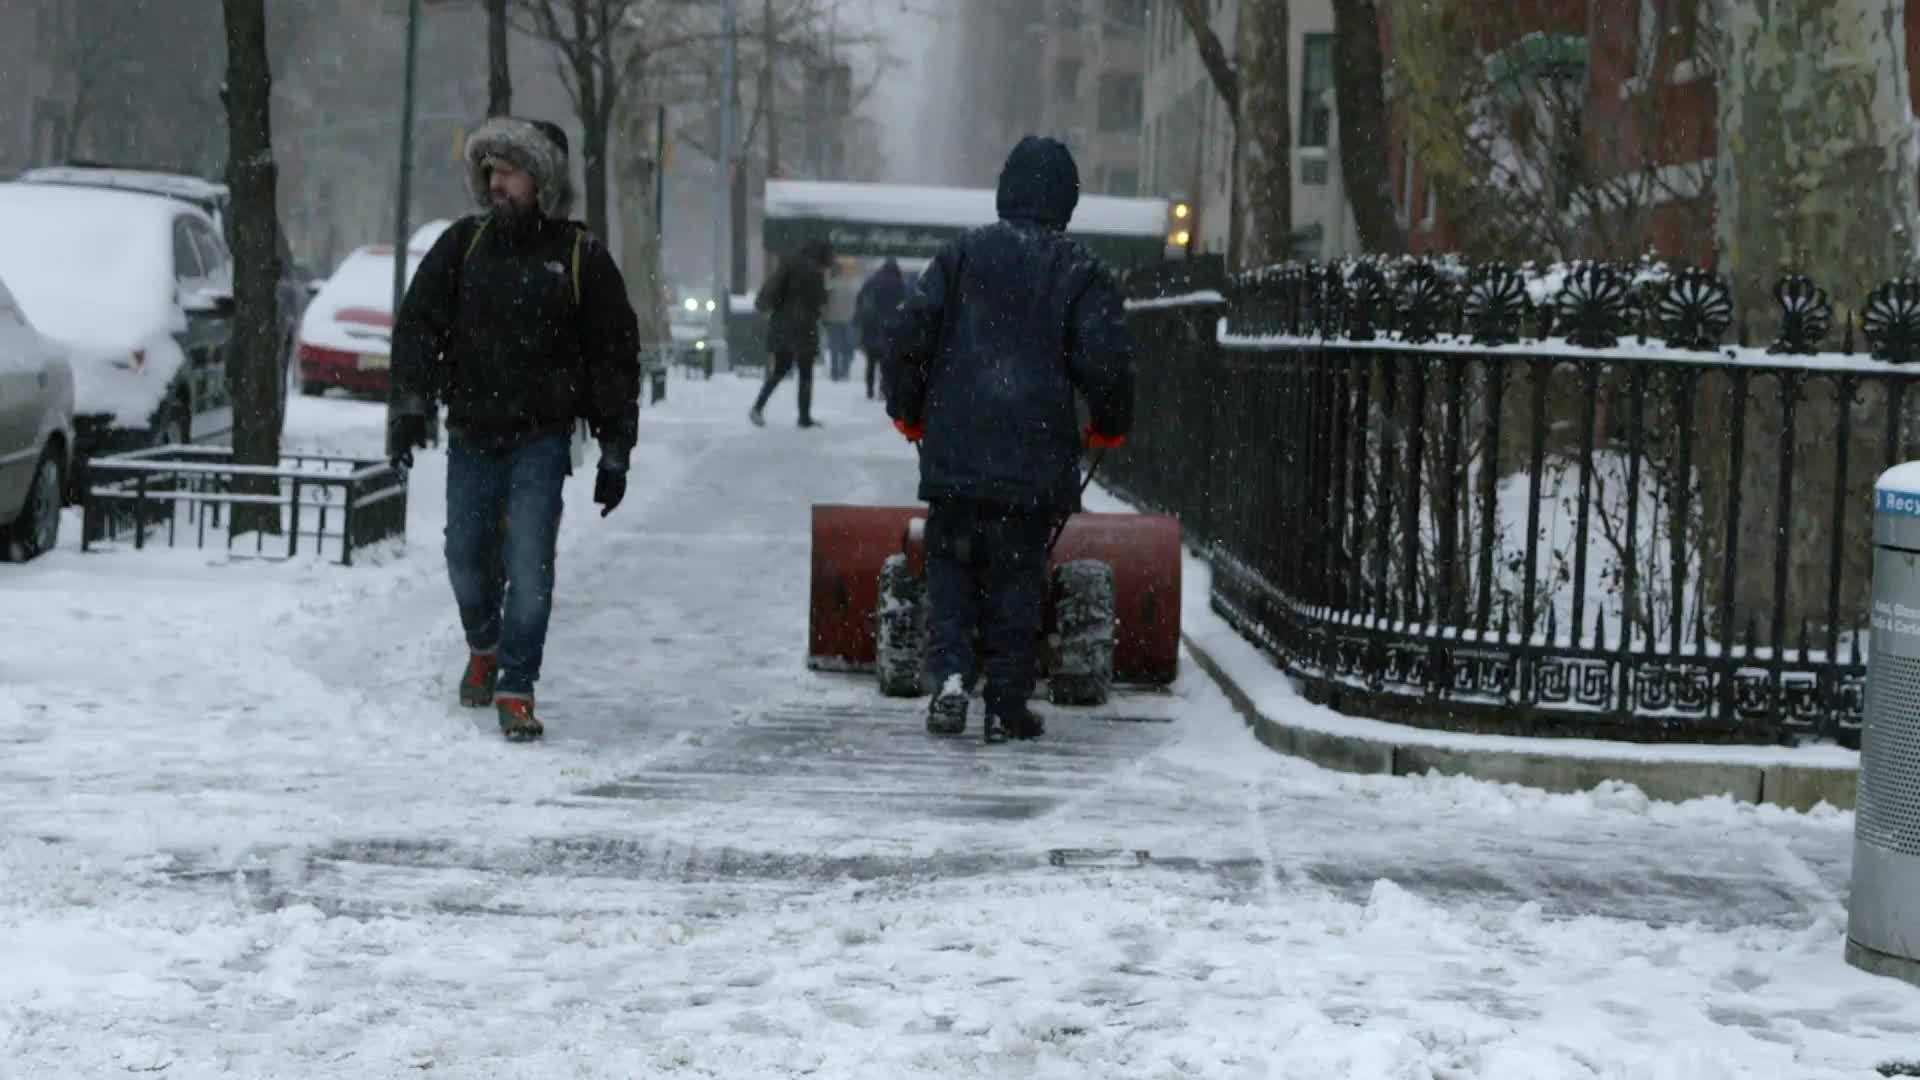 man plowing snow with snow plow in winter blizzard snowstorm - snowing in slow motion in Manhattan